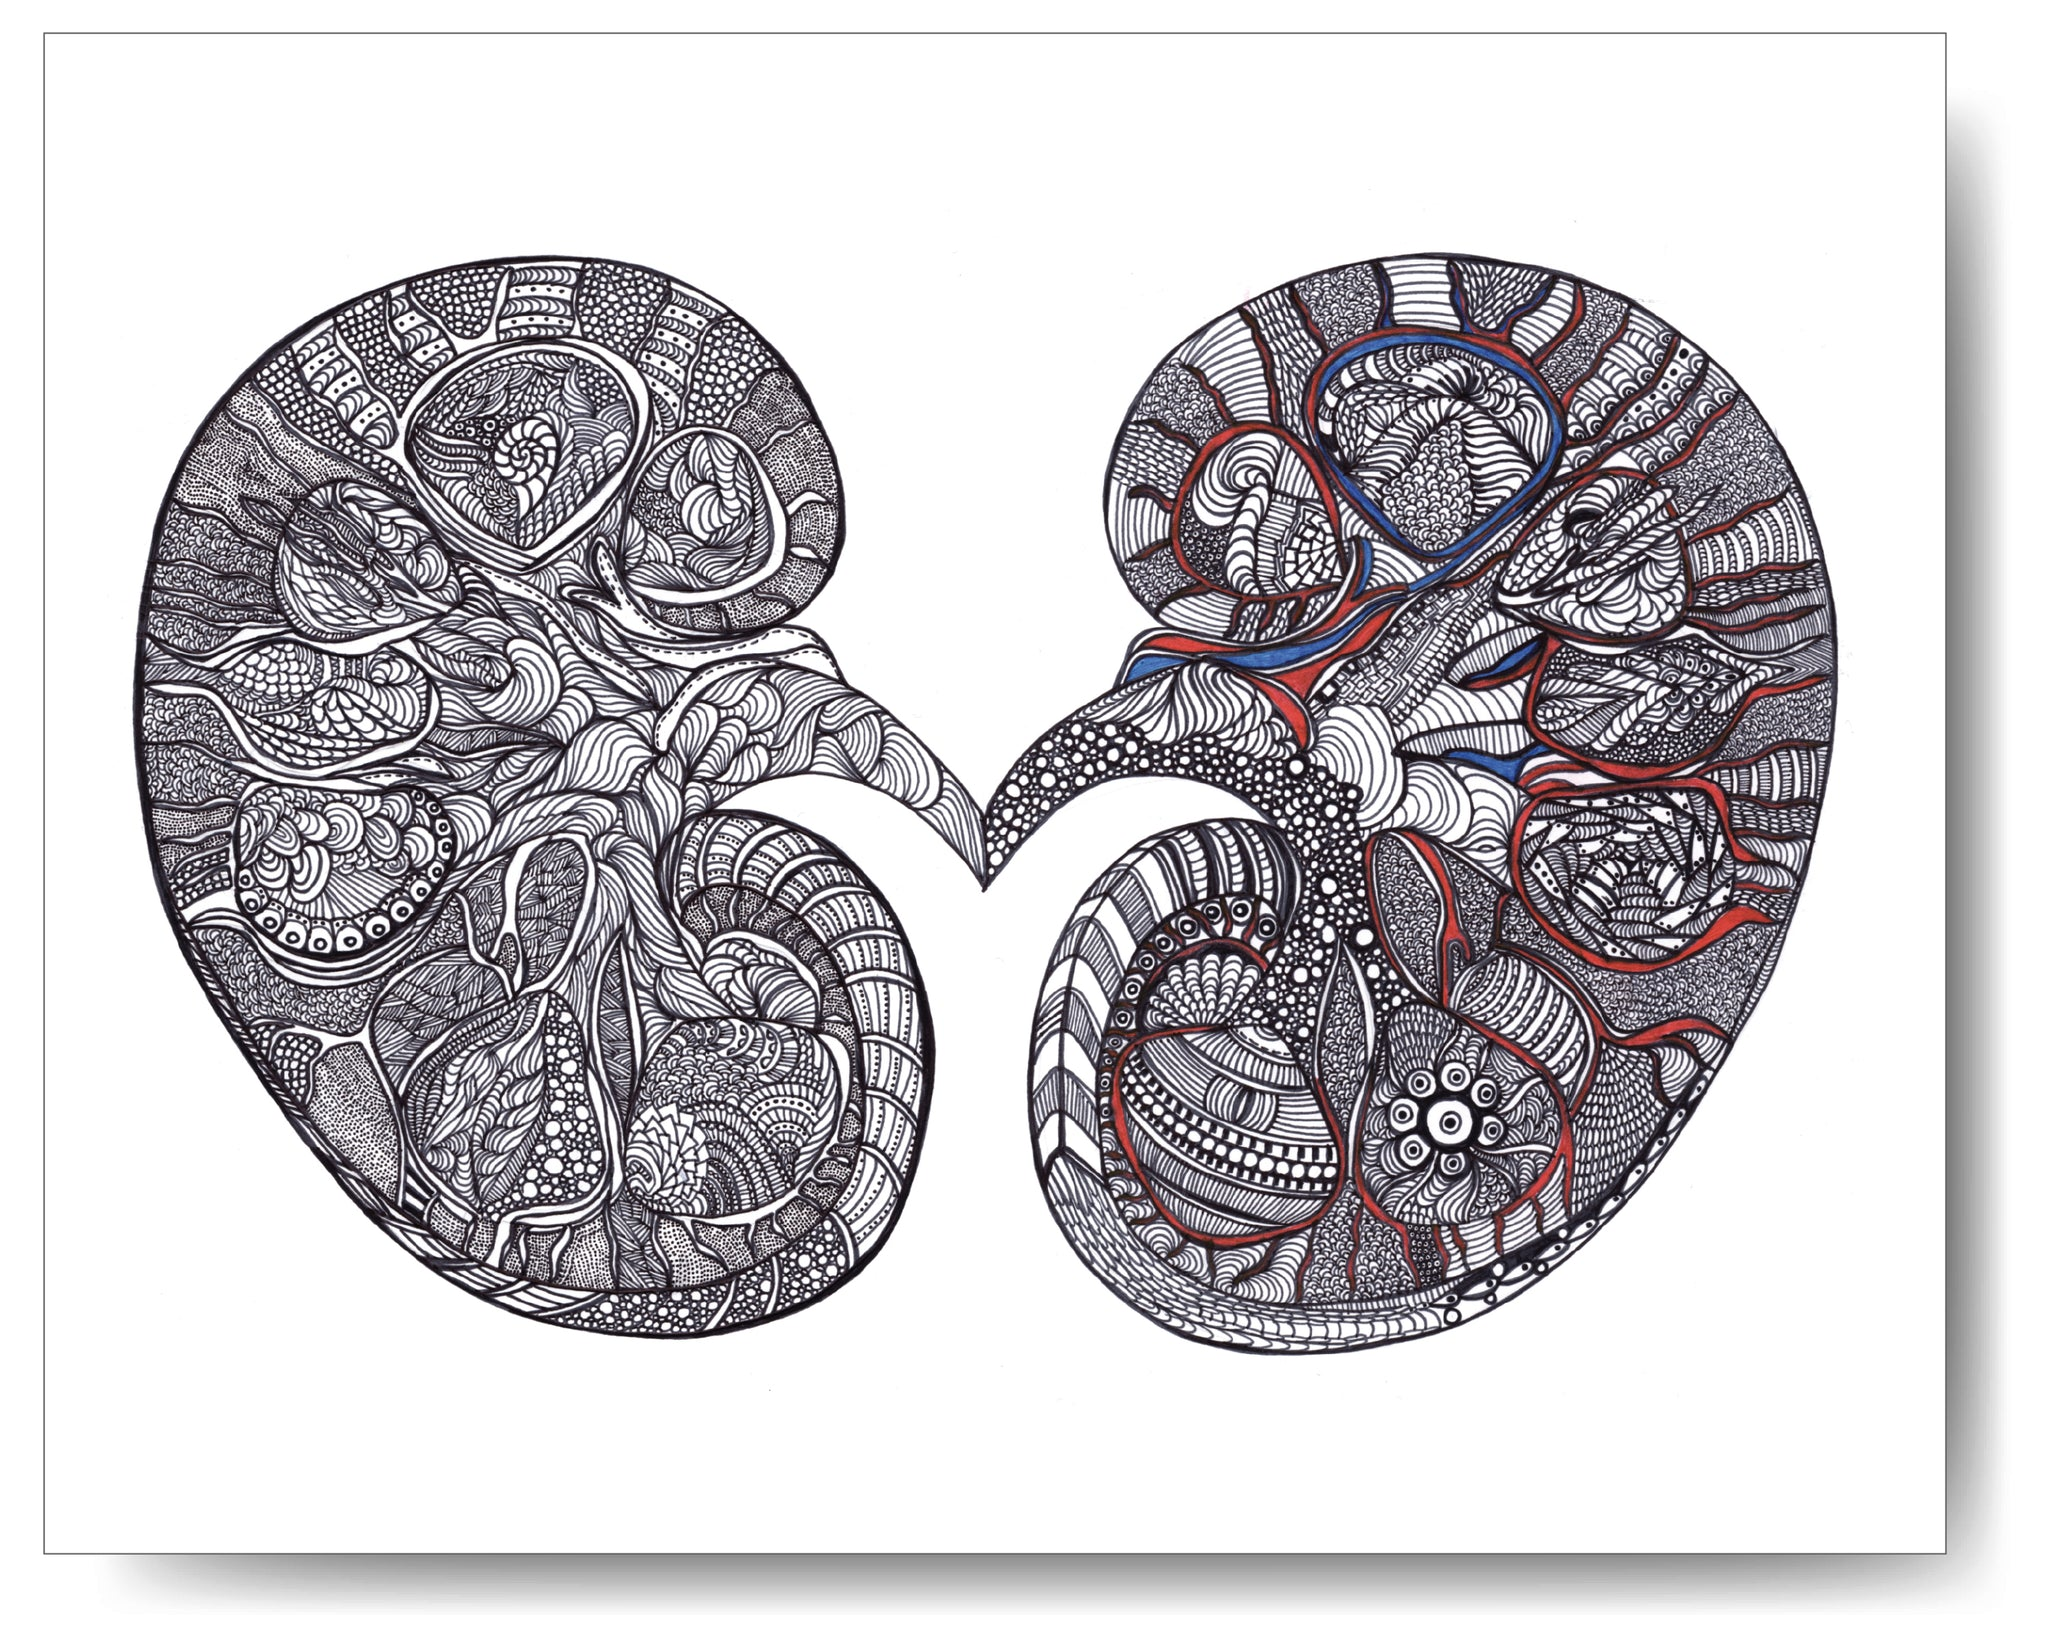 Kidney - 8x10 or 11x14